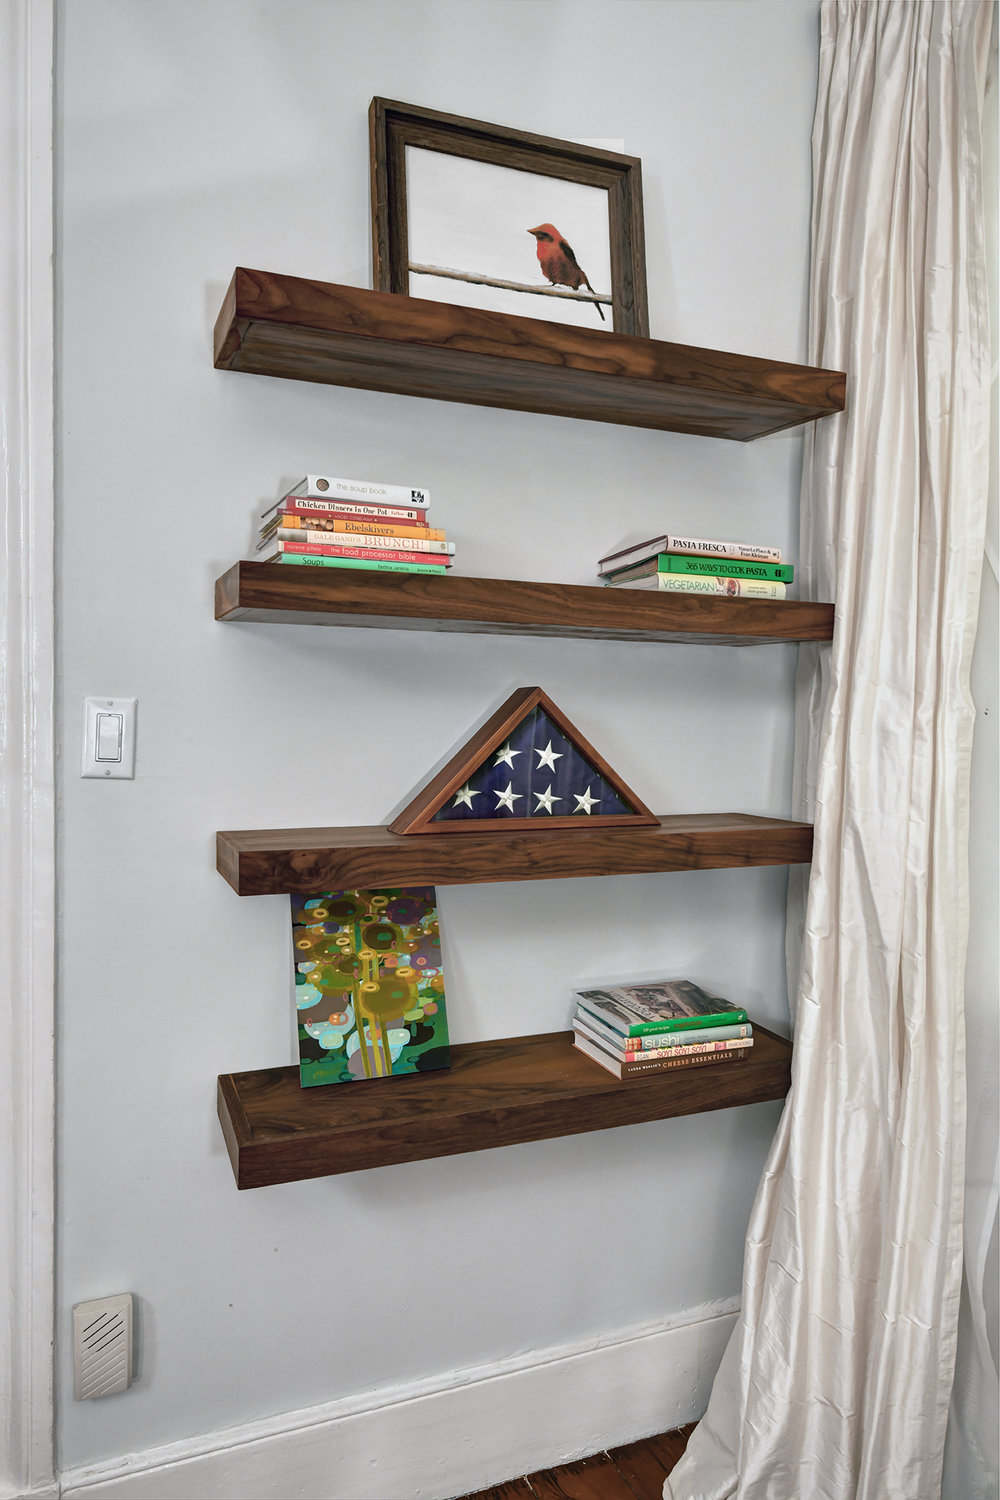 Floating shelves in rich walnut add depth and interest to an interior wall.